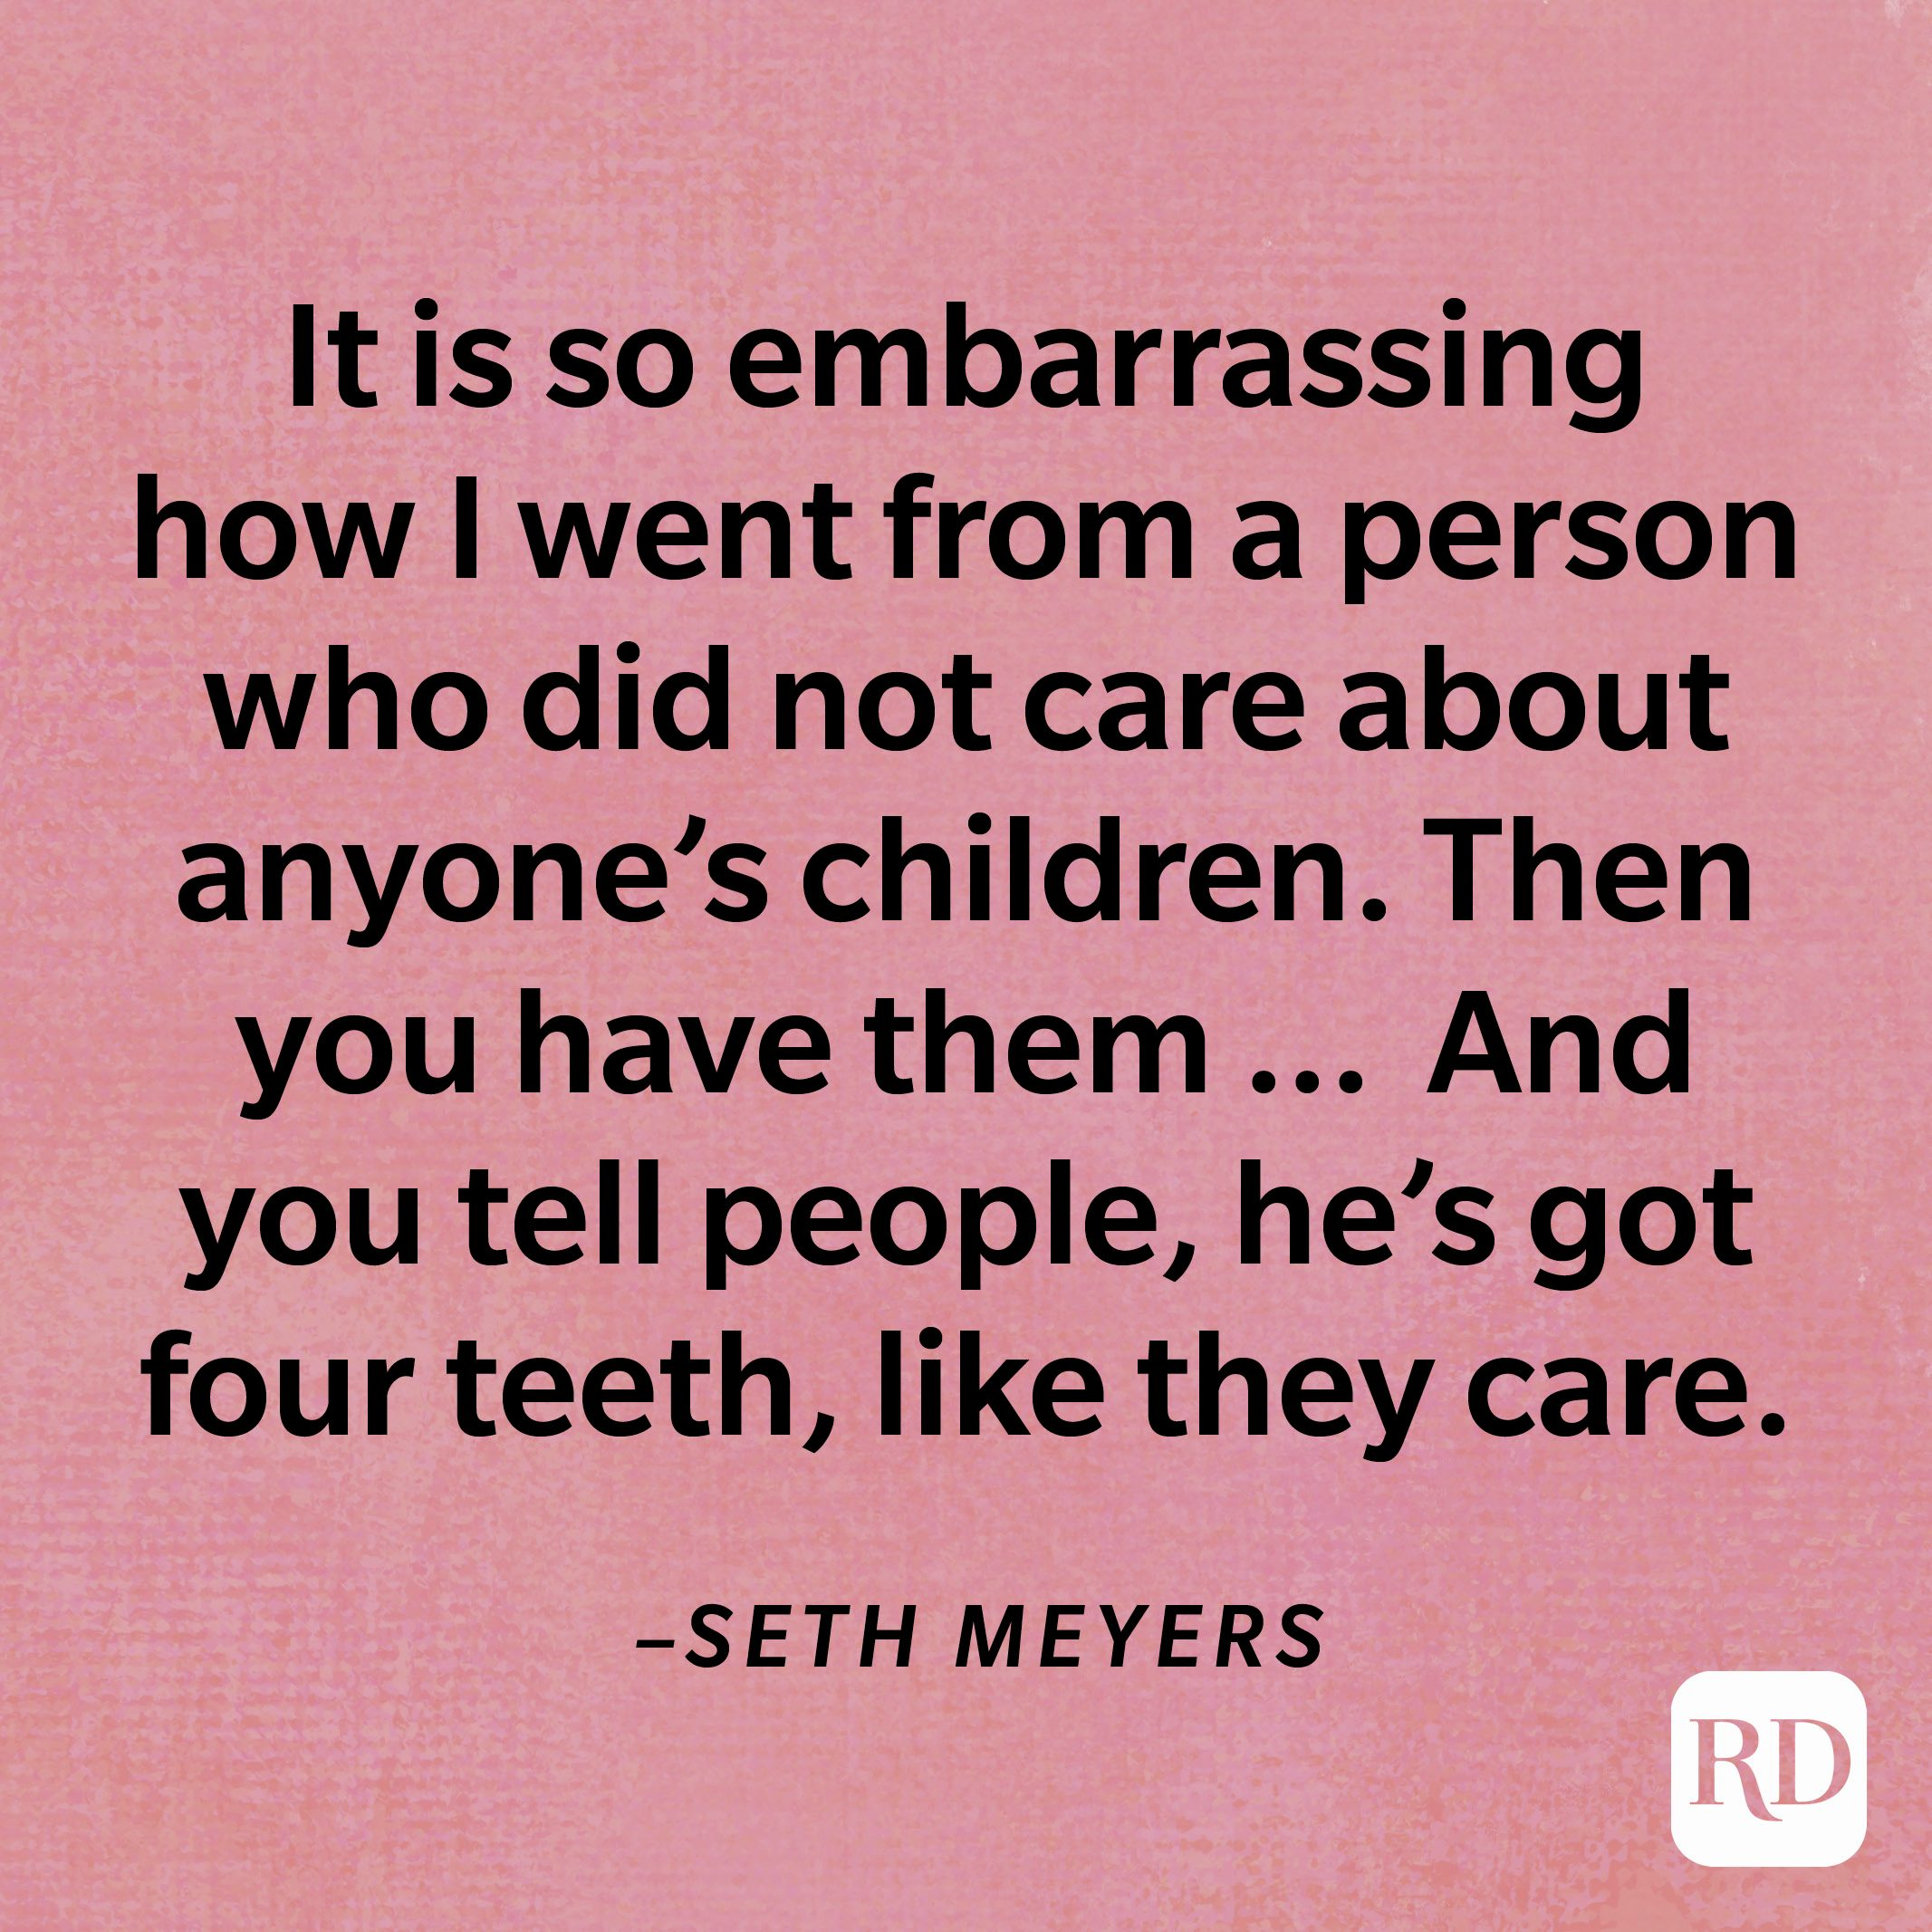 """""""It is so embarrassing how I went from a person who did not care about anyone's children. Then you have them, and you brag about the same stuff that you never cared about. And you tell people, he's got four teeth, like they care.""""—Seth Meyers"""